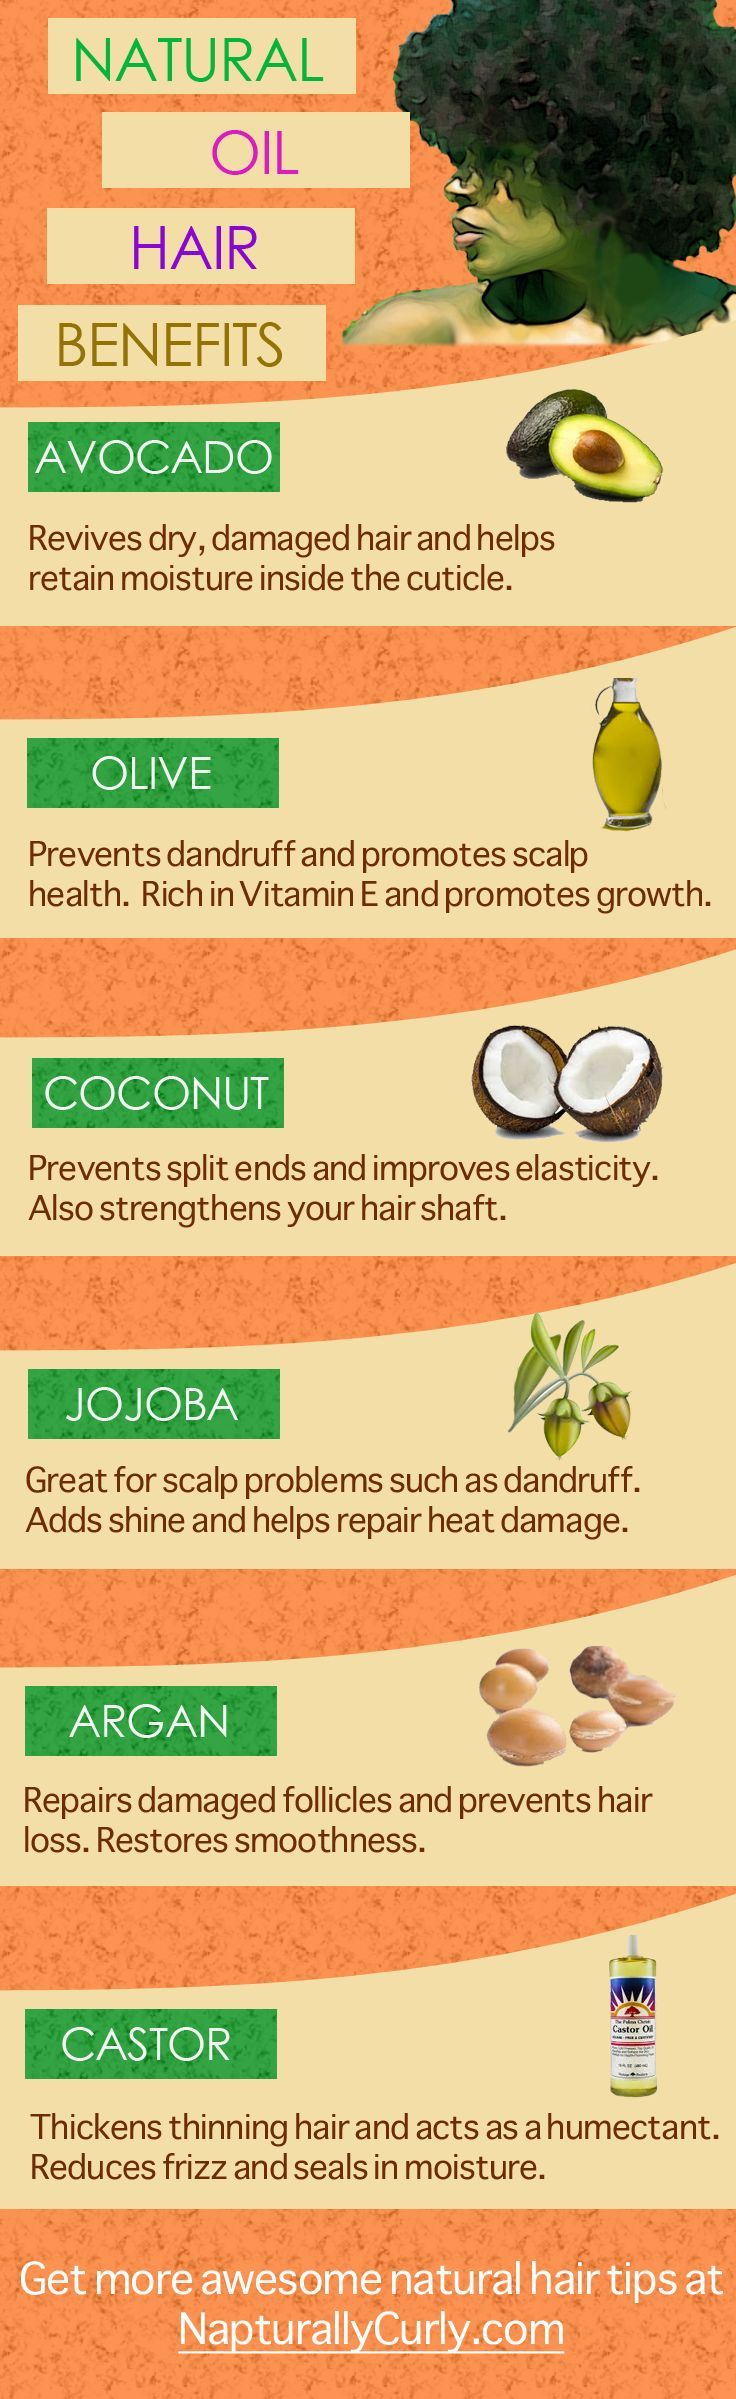 Discover the specific benefits of each natural oil on natural hair. Get hot oil treatment tips here http://napturallycurly.com/hot-oil-treatments-on-natural-or-transitioning-hair/